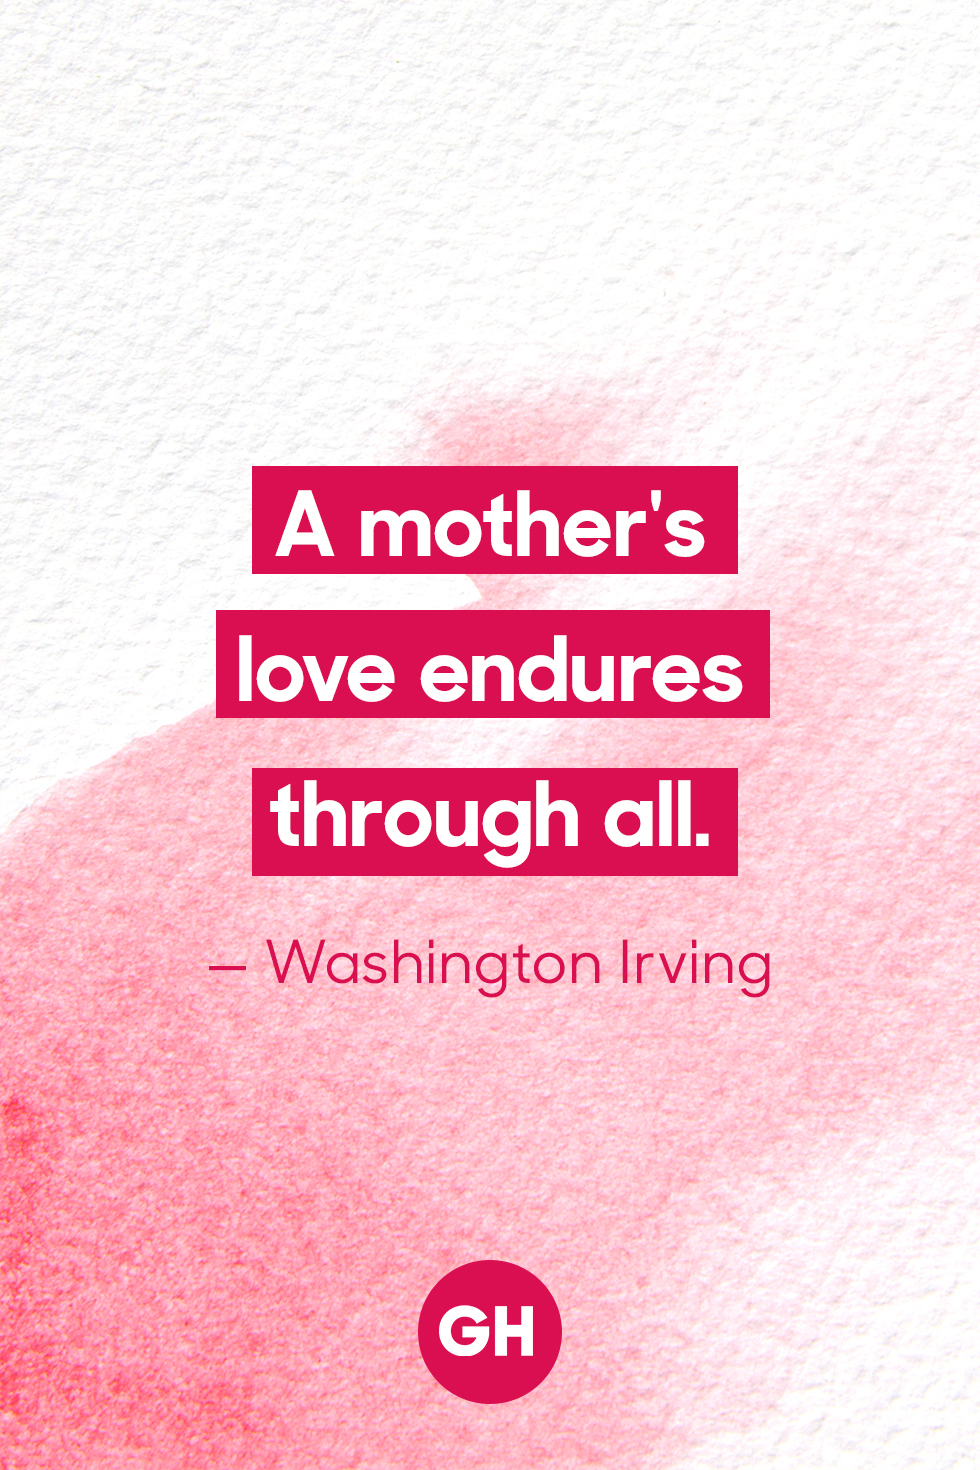 Quotes About A Mother's Love 14 Best Mother's Day Quotes  Sayings About Motherhood